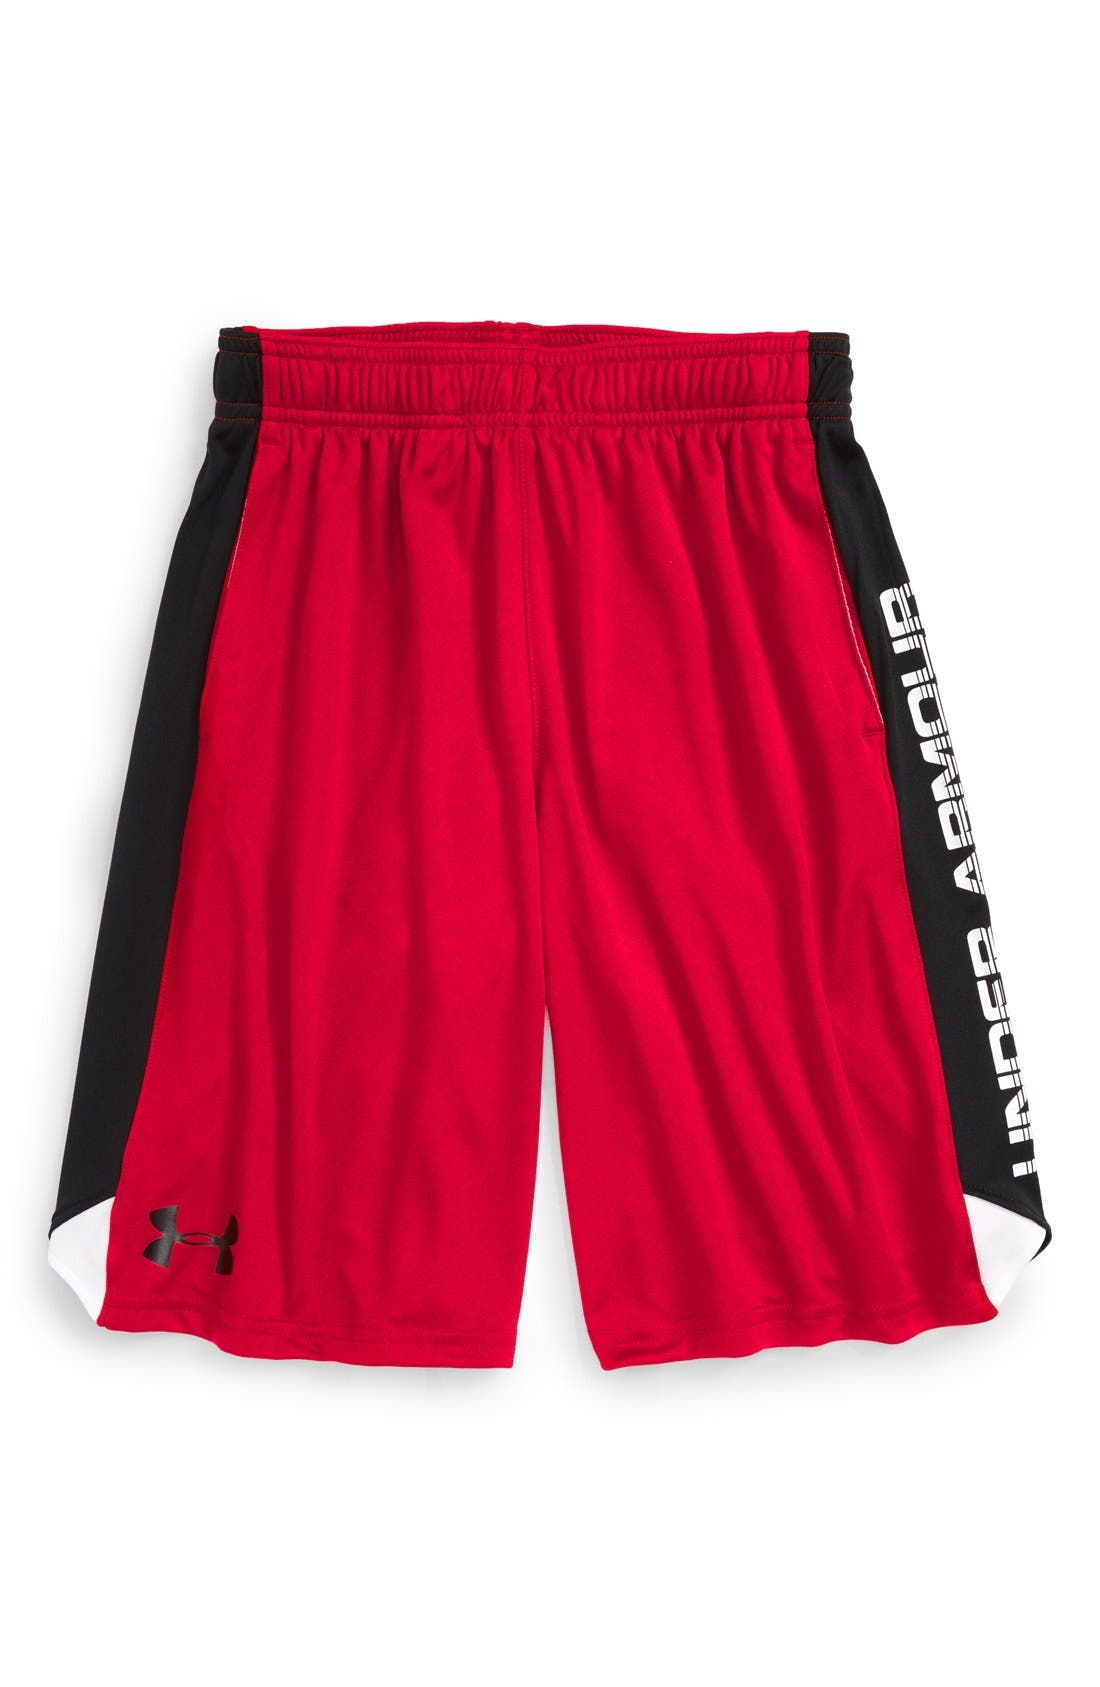 'Eliminator' HeatGear<sup>®</sup> Shorts,                         Main,                         color, Red/ Black/ Black